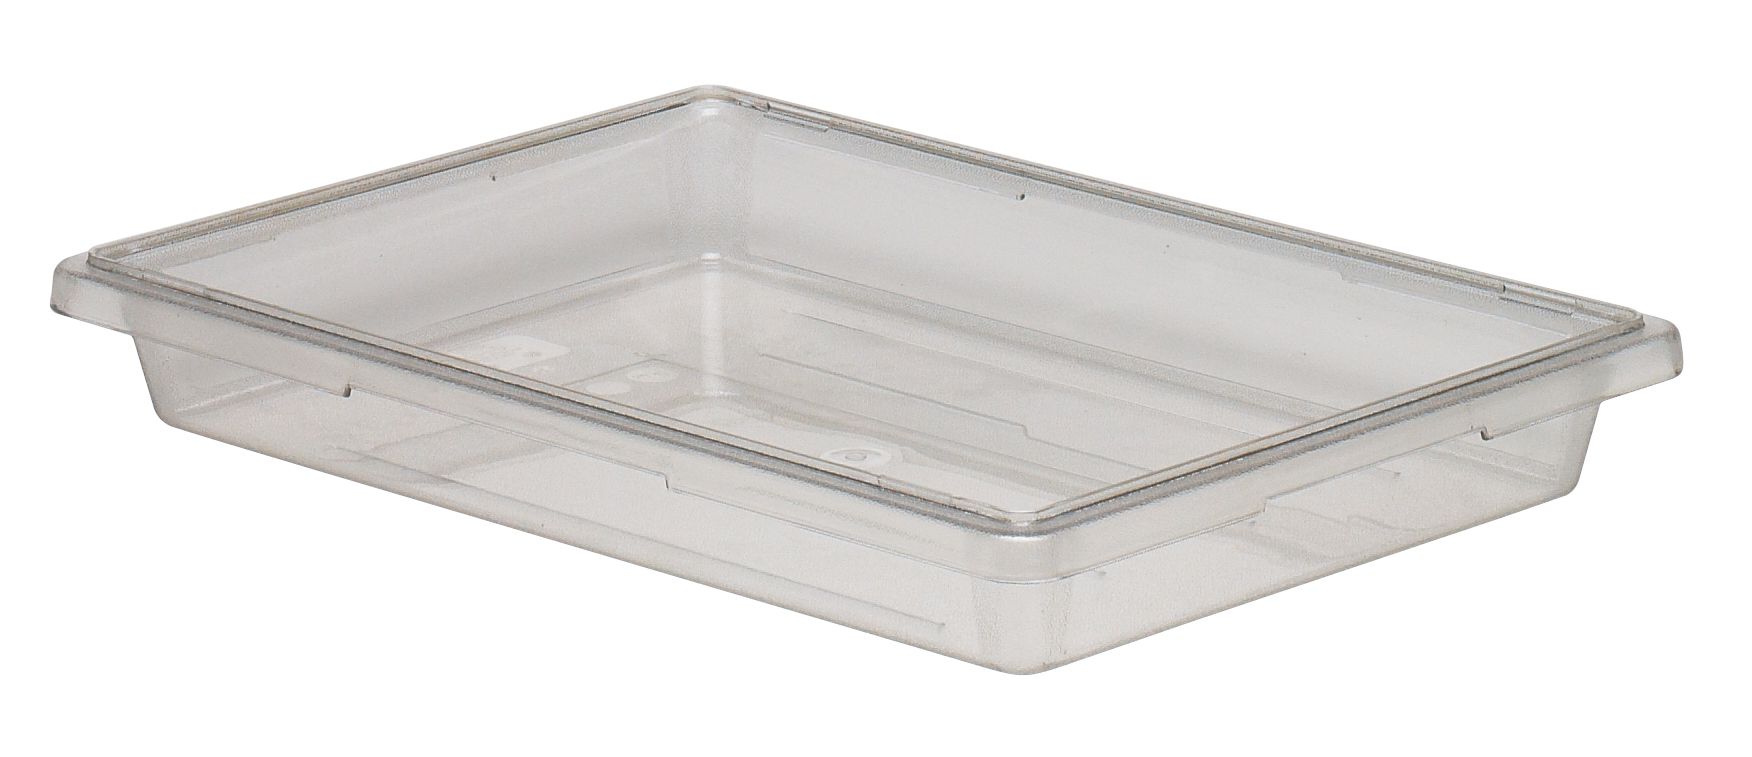 Cambro 18263CW135 food/beverage storage container